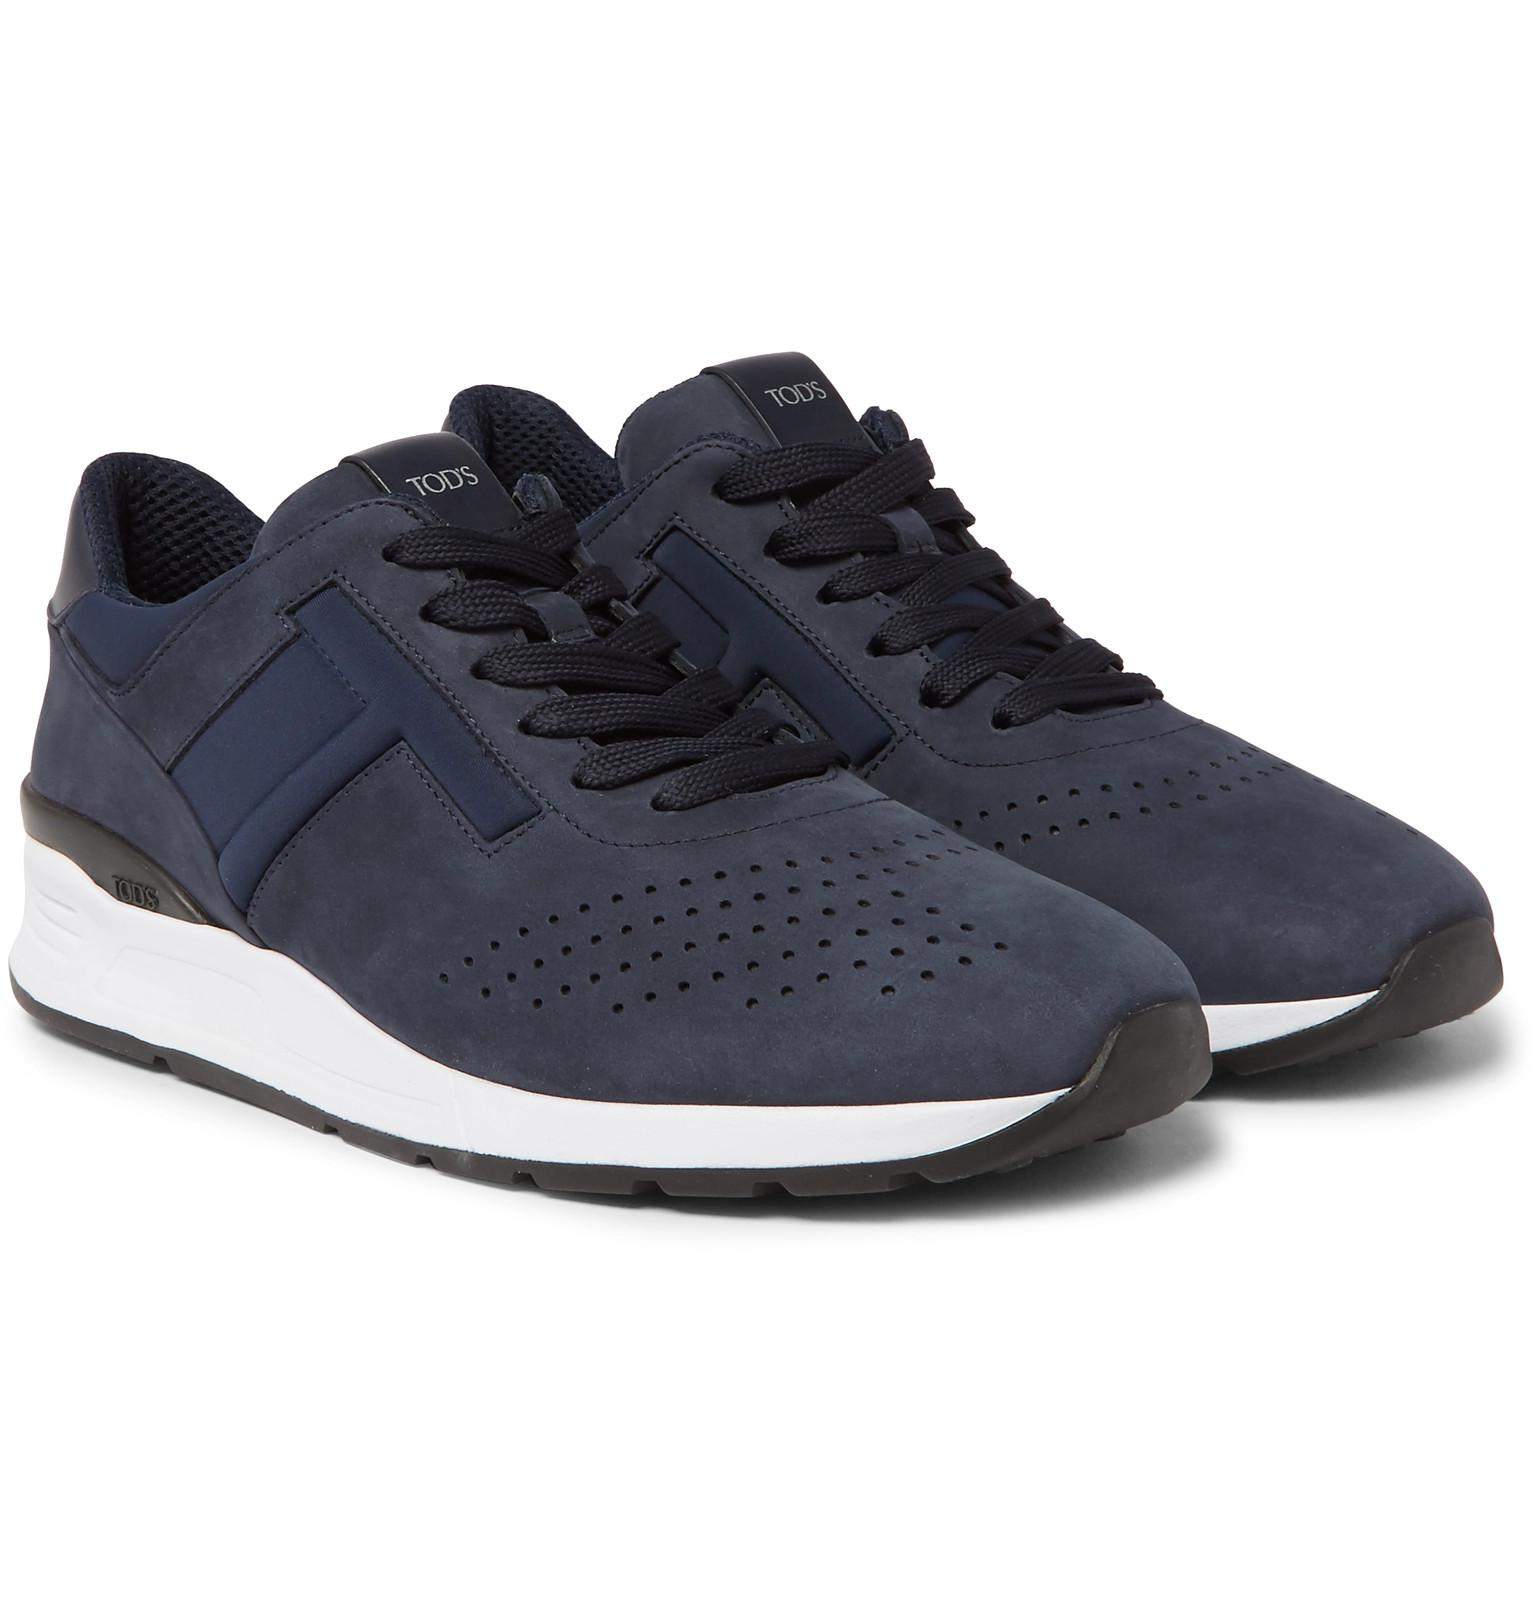 Tod's Leather-Trimmed Nubuck and Neoprene Sneakers 2014 online sale shop for kwR35N16zB